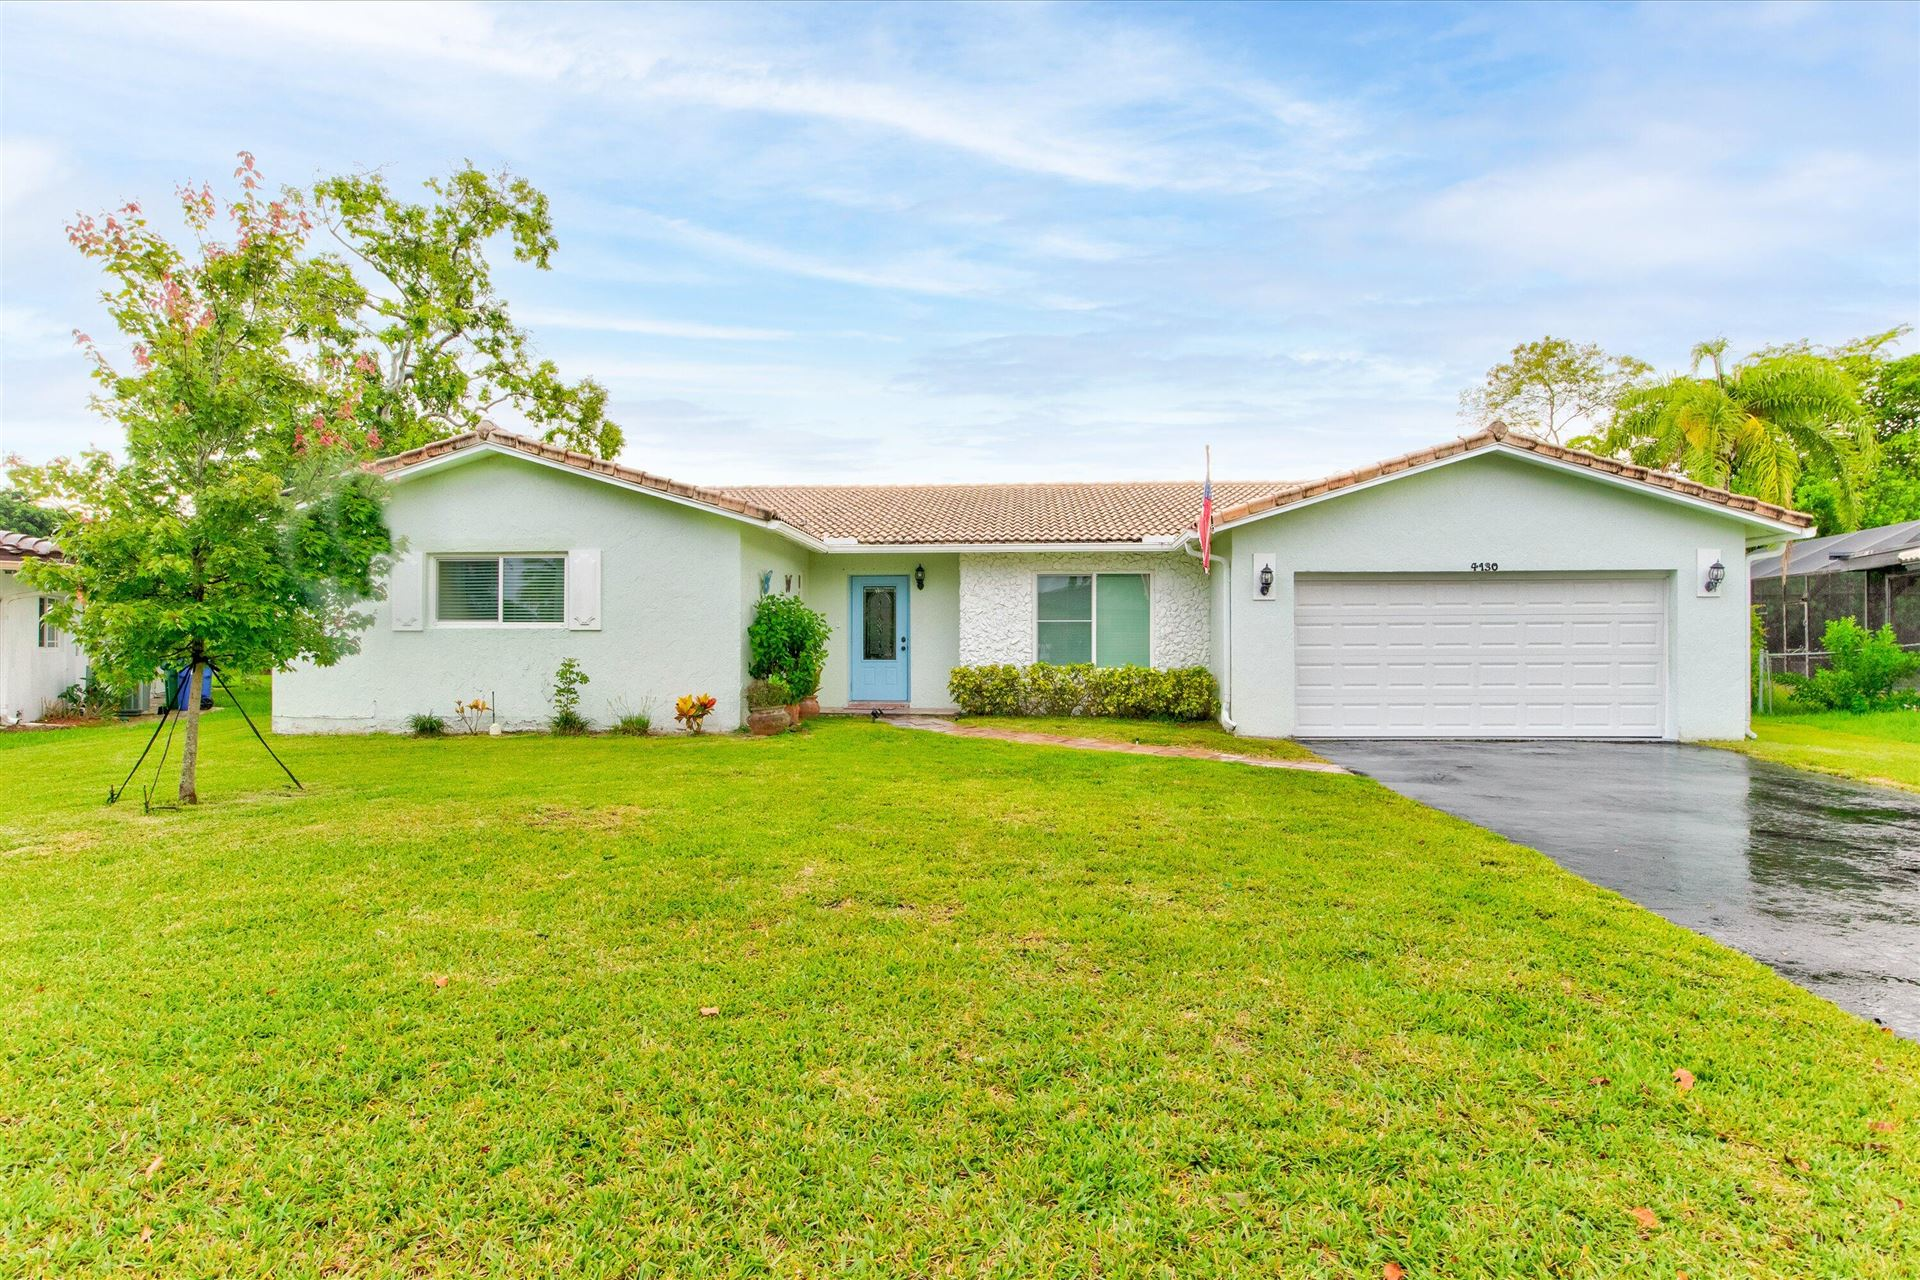 Photo of 4130 NW 113th Avenue, Coral Springs, FL 33065 (MLS # RX-10733572)